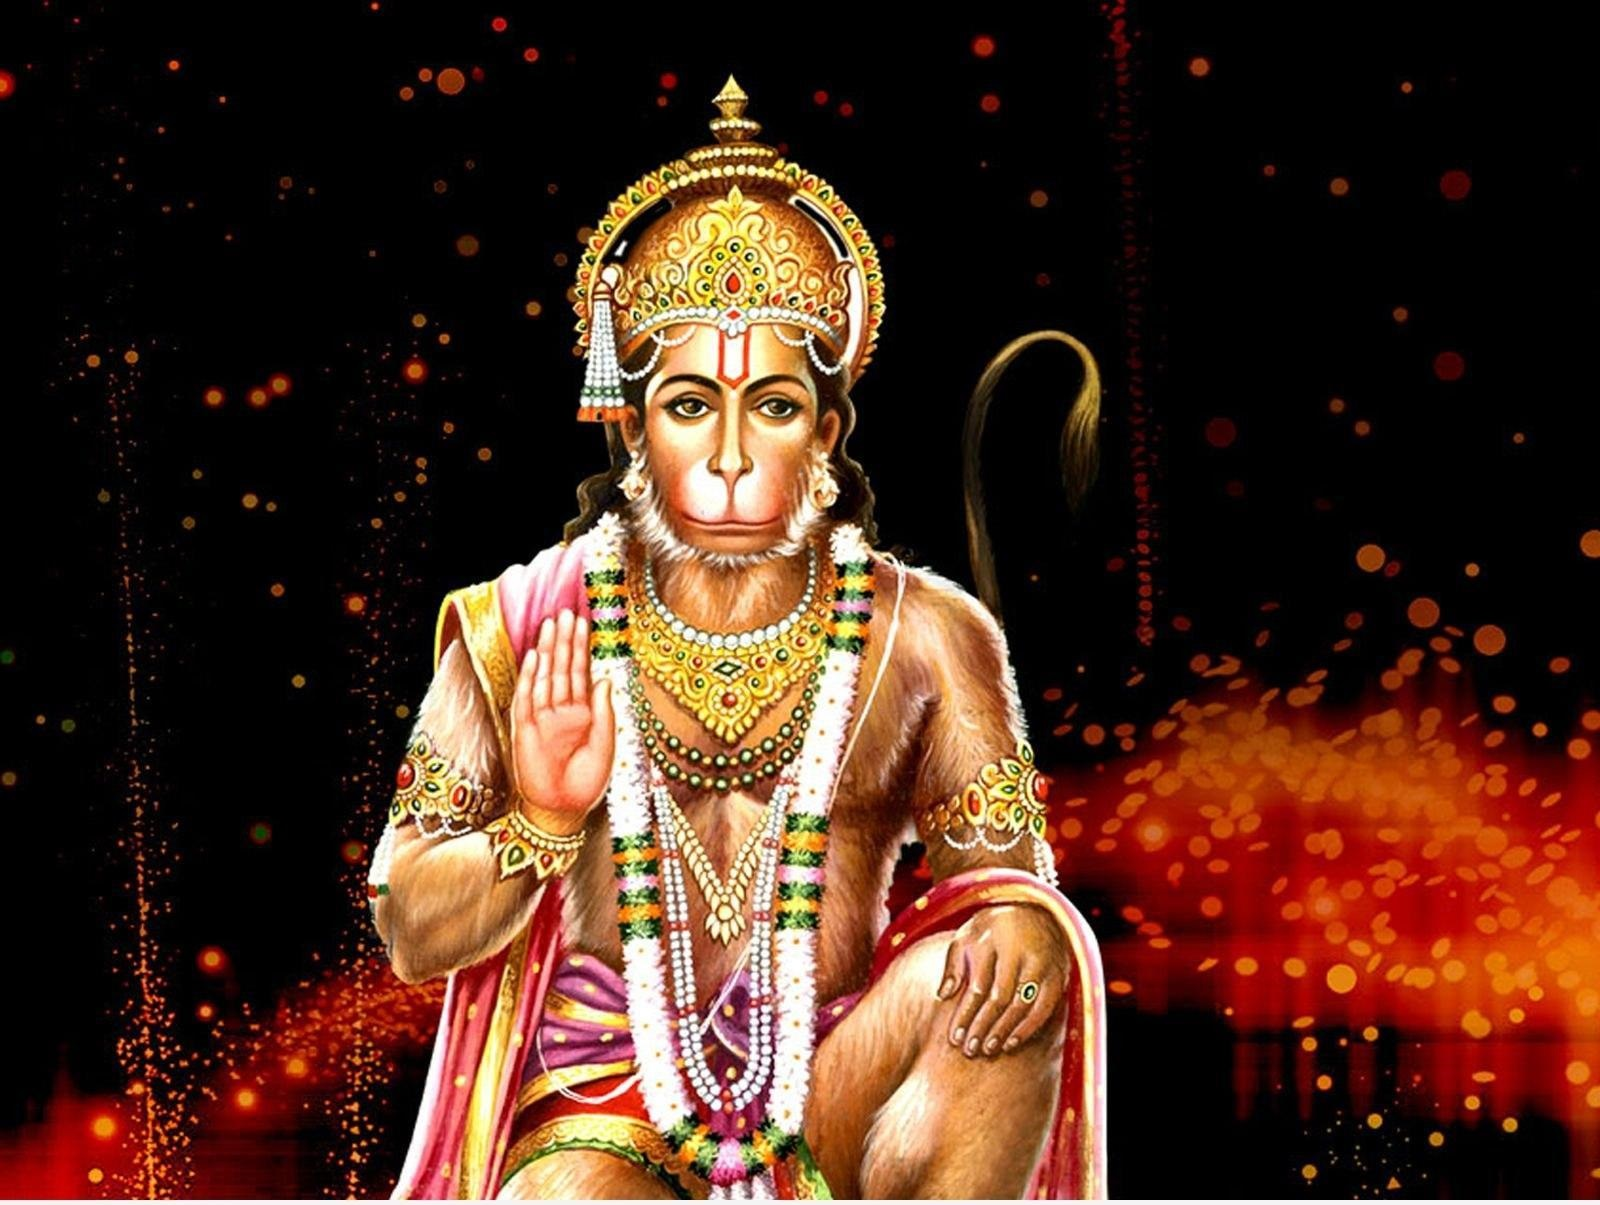 original hanuman ji image wallpapers of hanuman ji bajrang bali